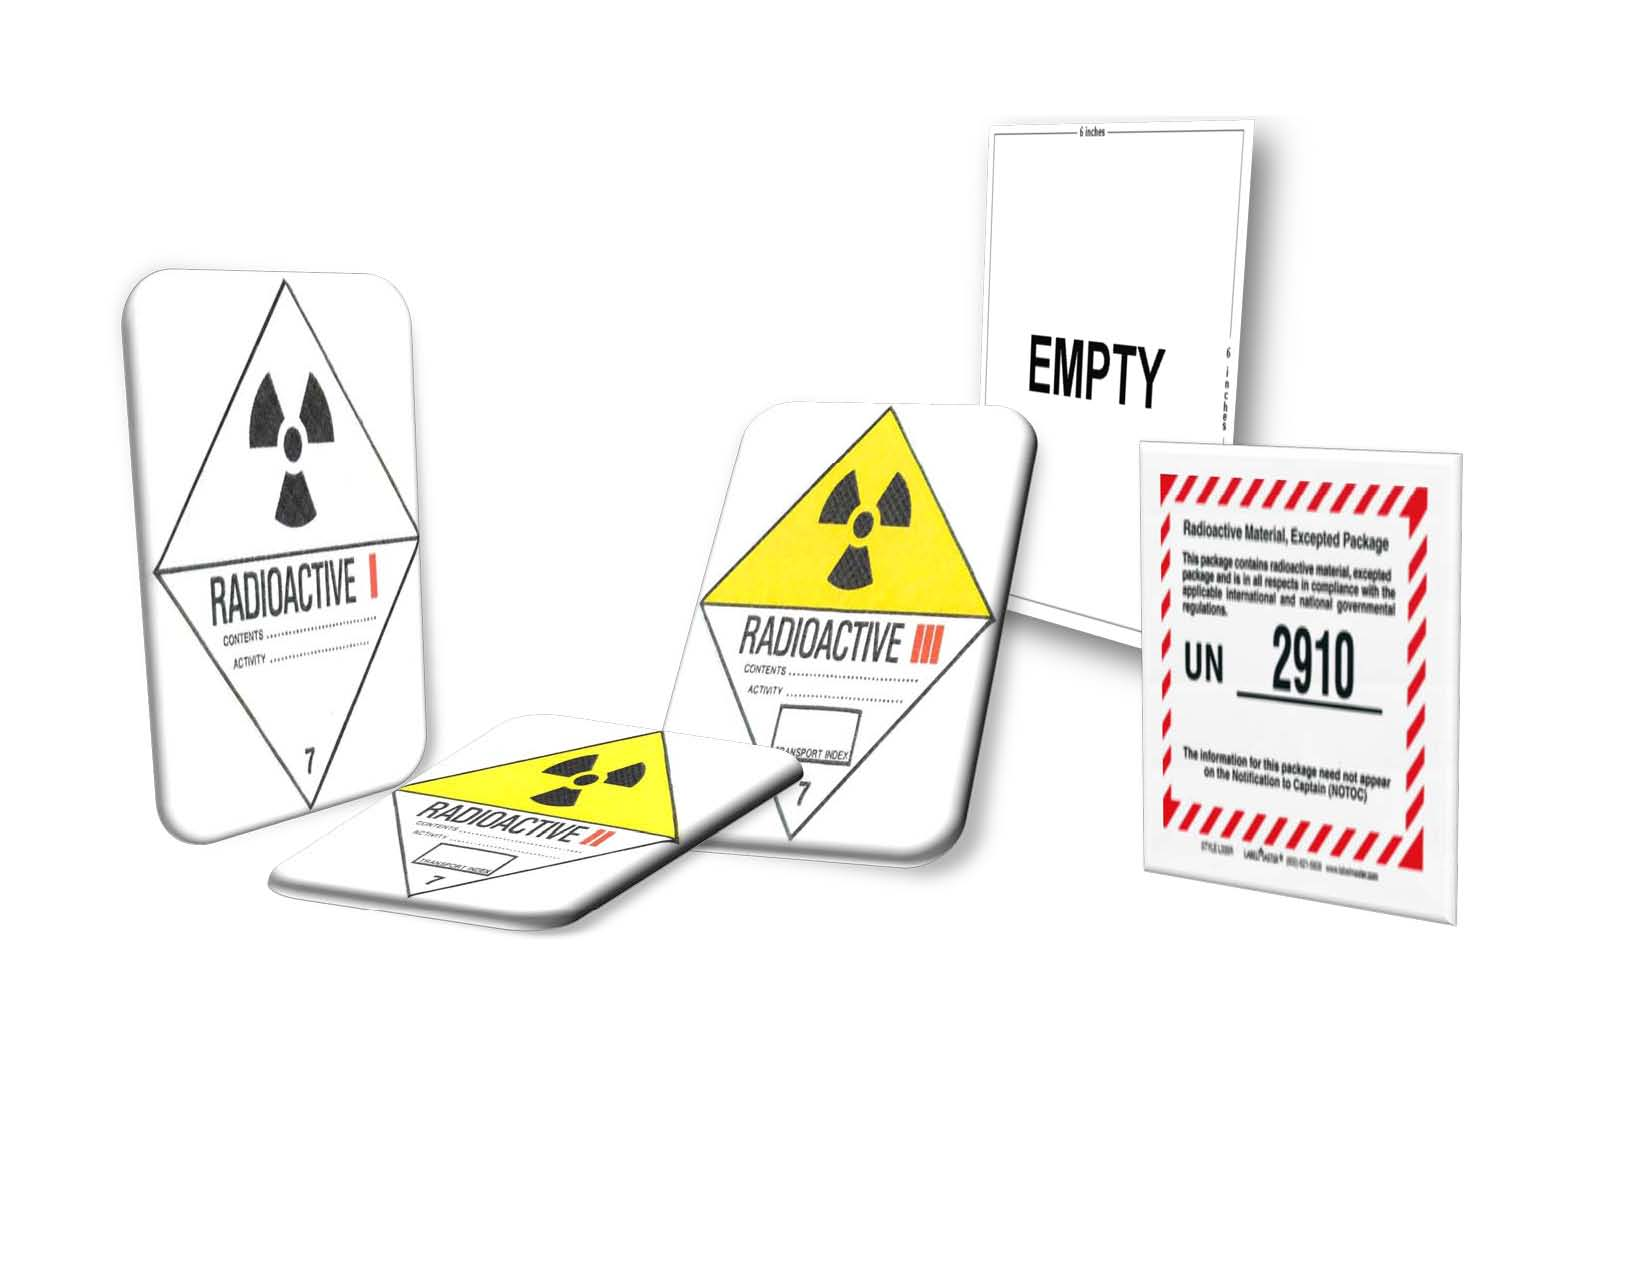 Ordering Shipping And Receiving Radioactive Materials